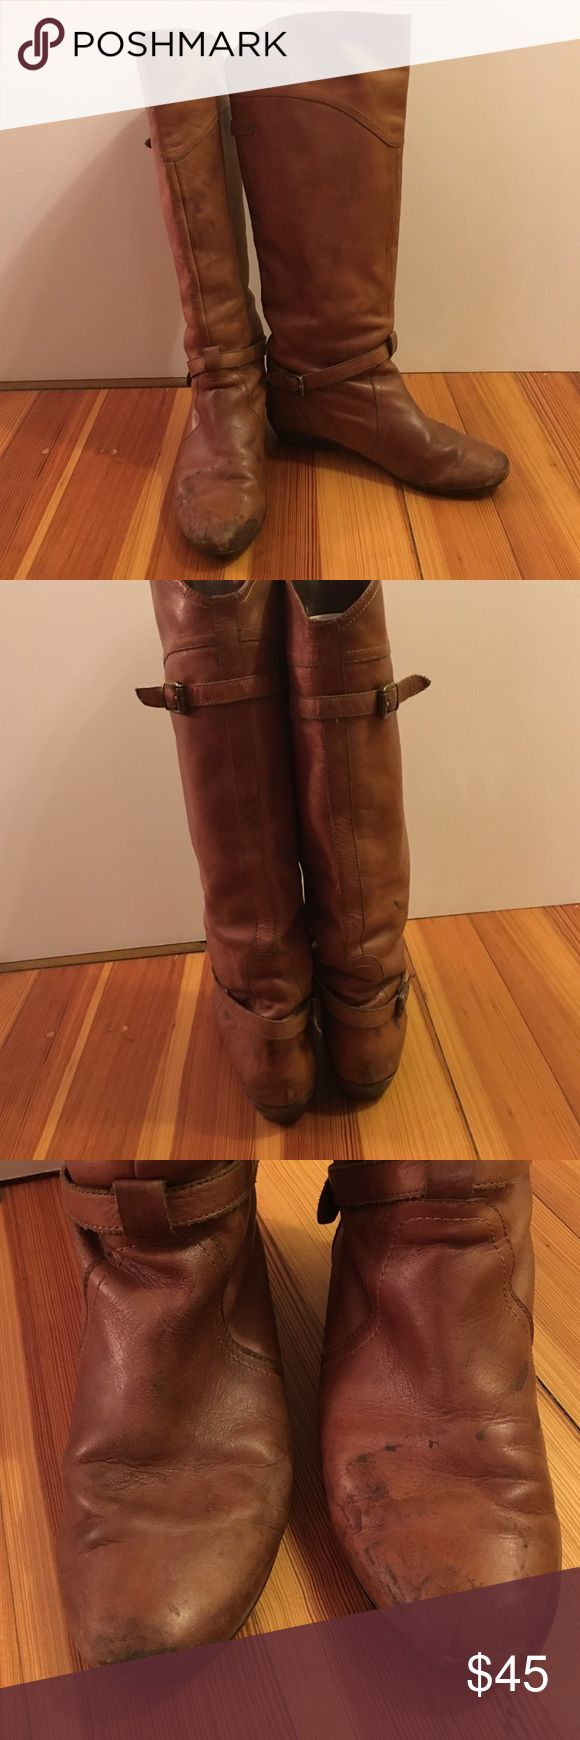 Dolce Vita very warn knee high boots Camel dolce vita knee high boots these boots are VERY warm in and great for the farm or the ranch but still look really cute Dolce Vita Shoes